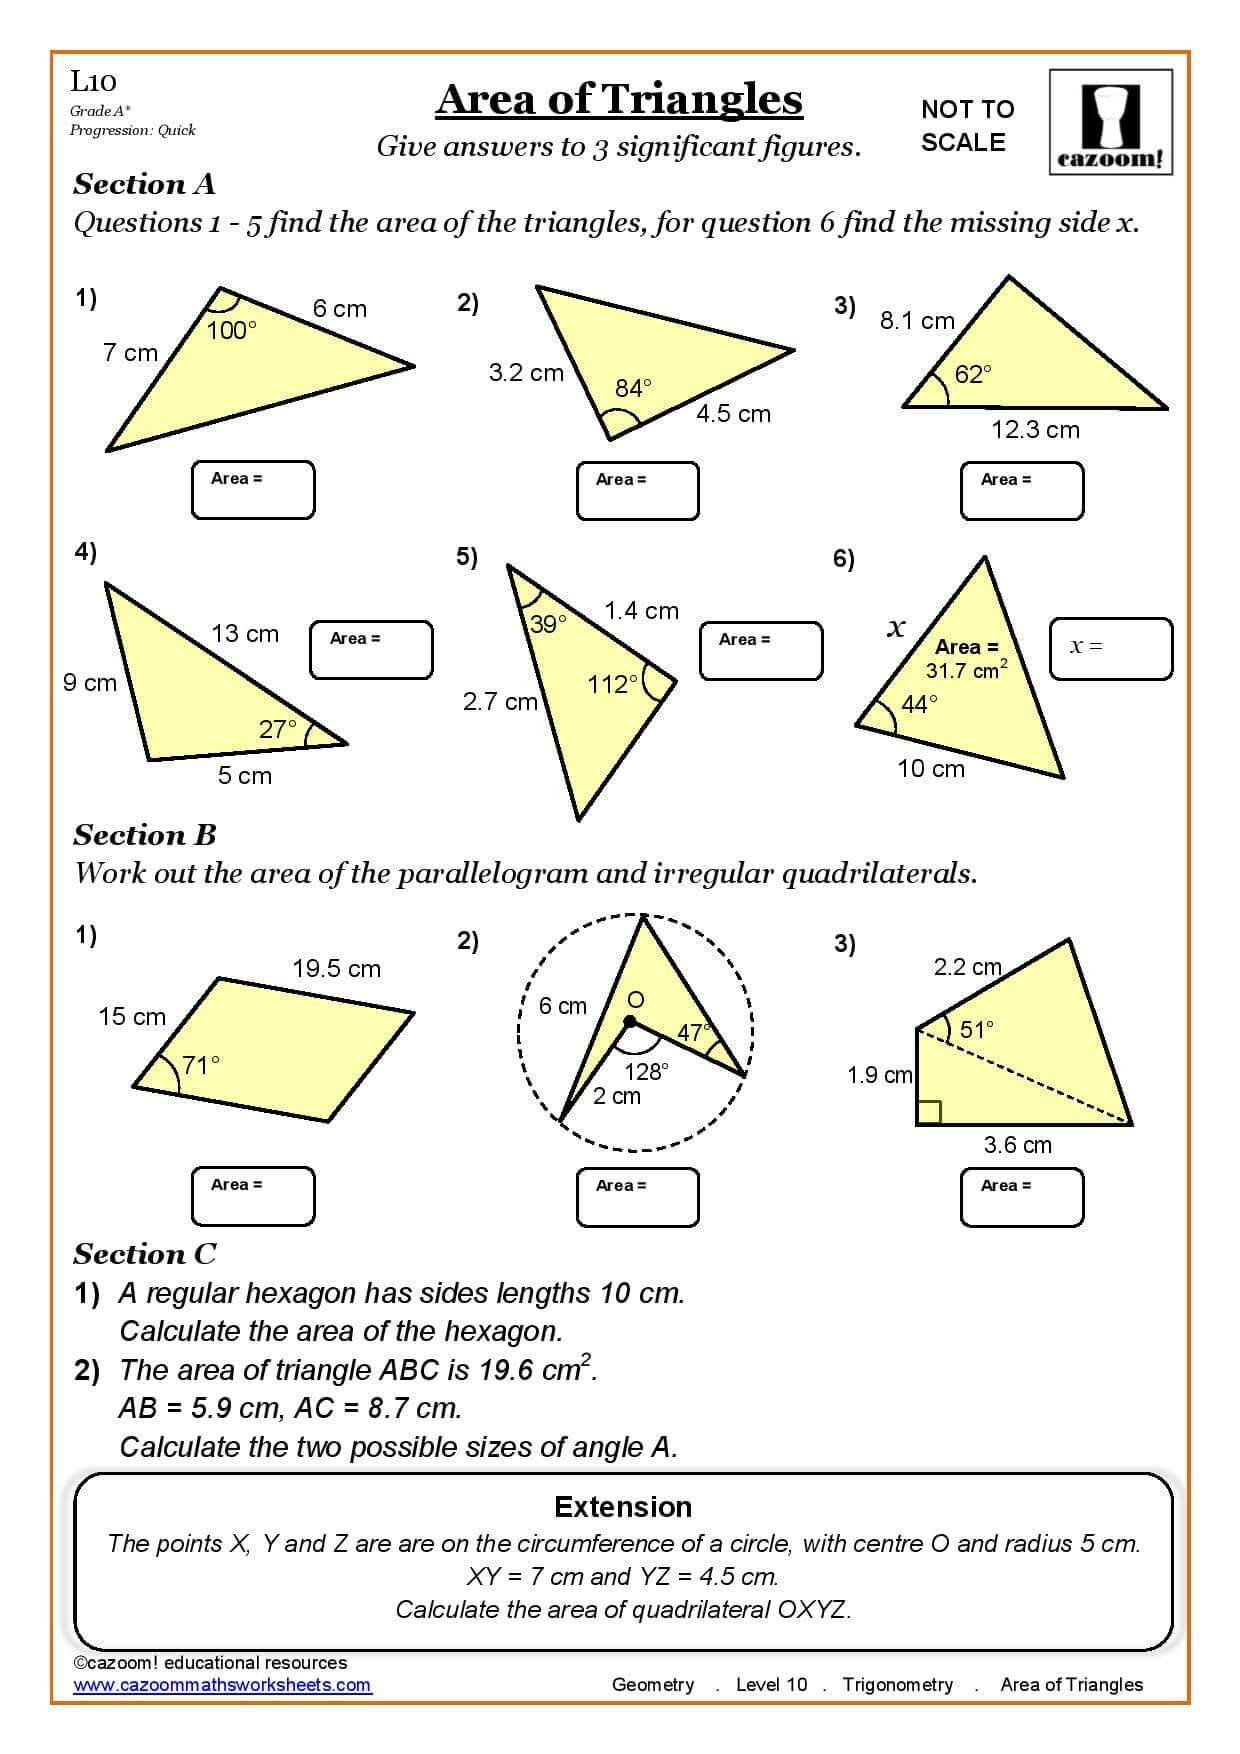 Area Of Triangles Maths Worksheet